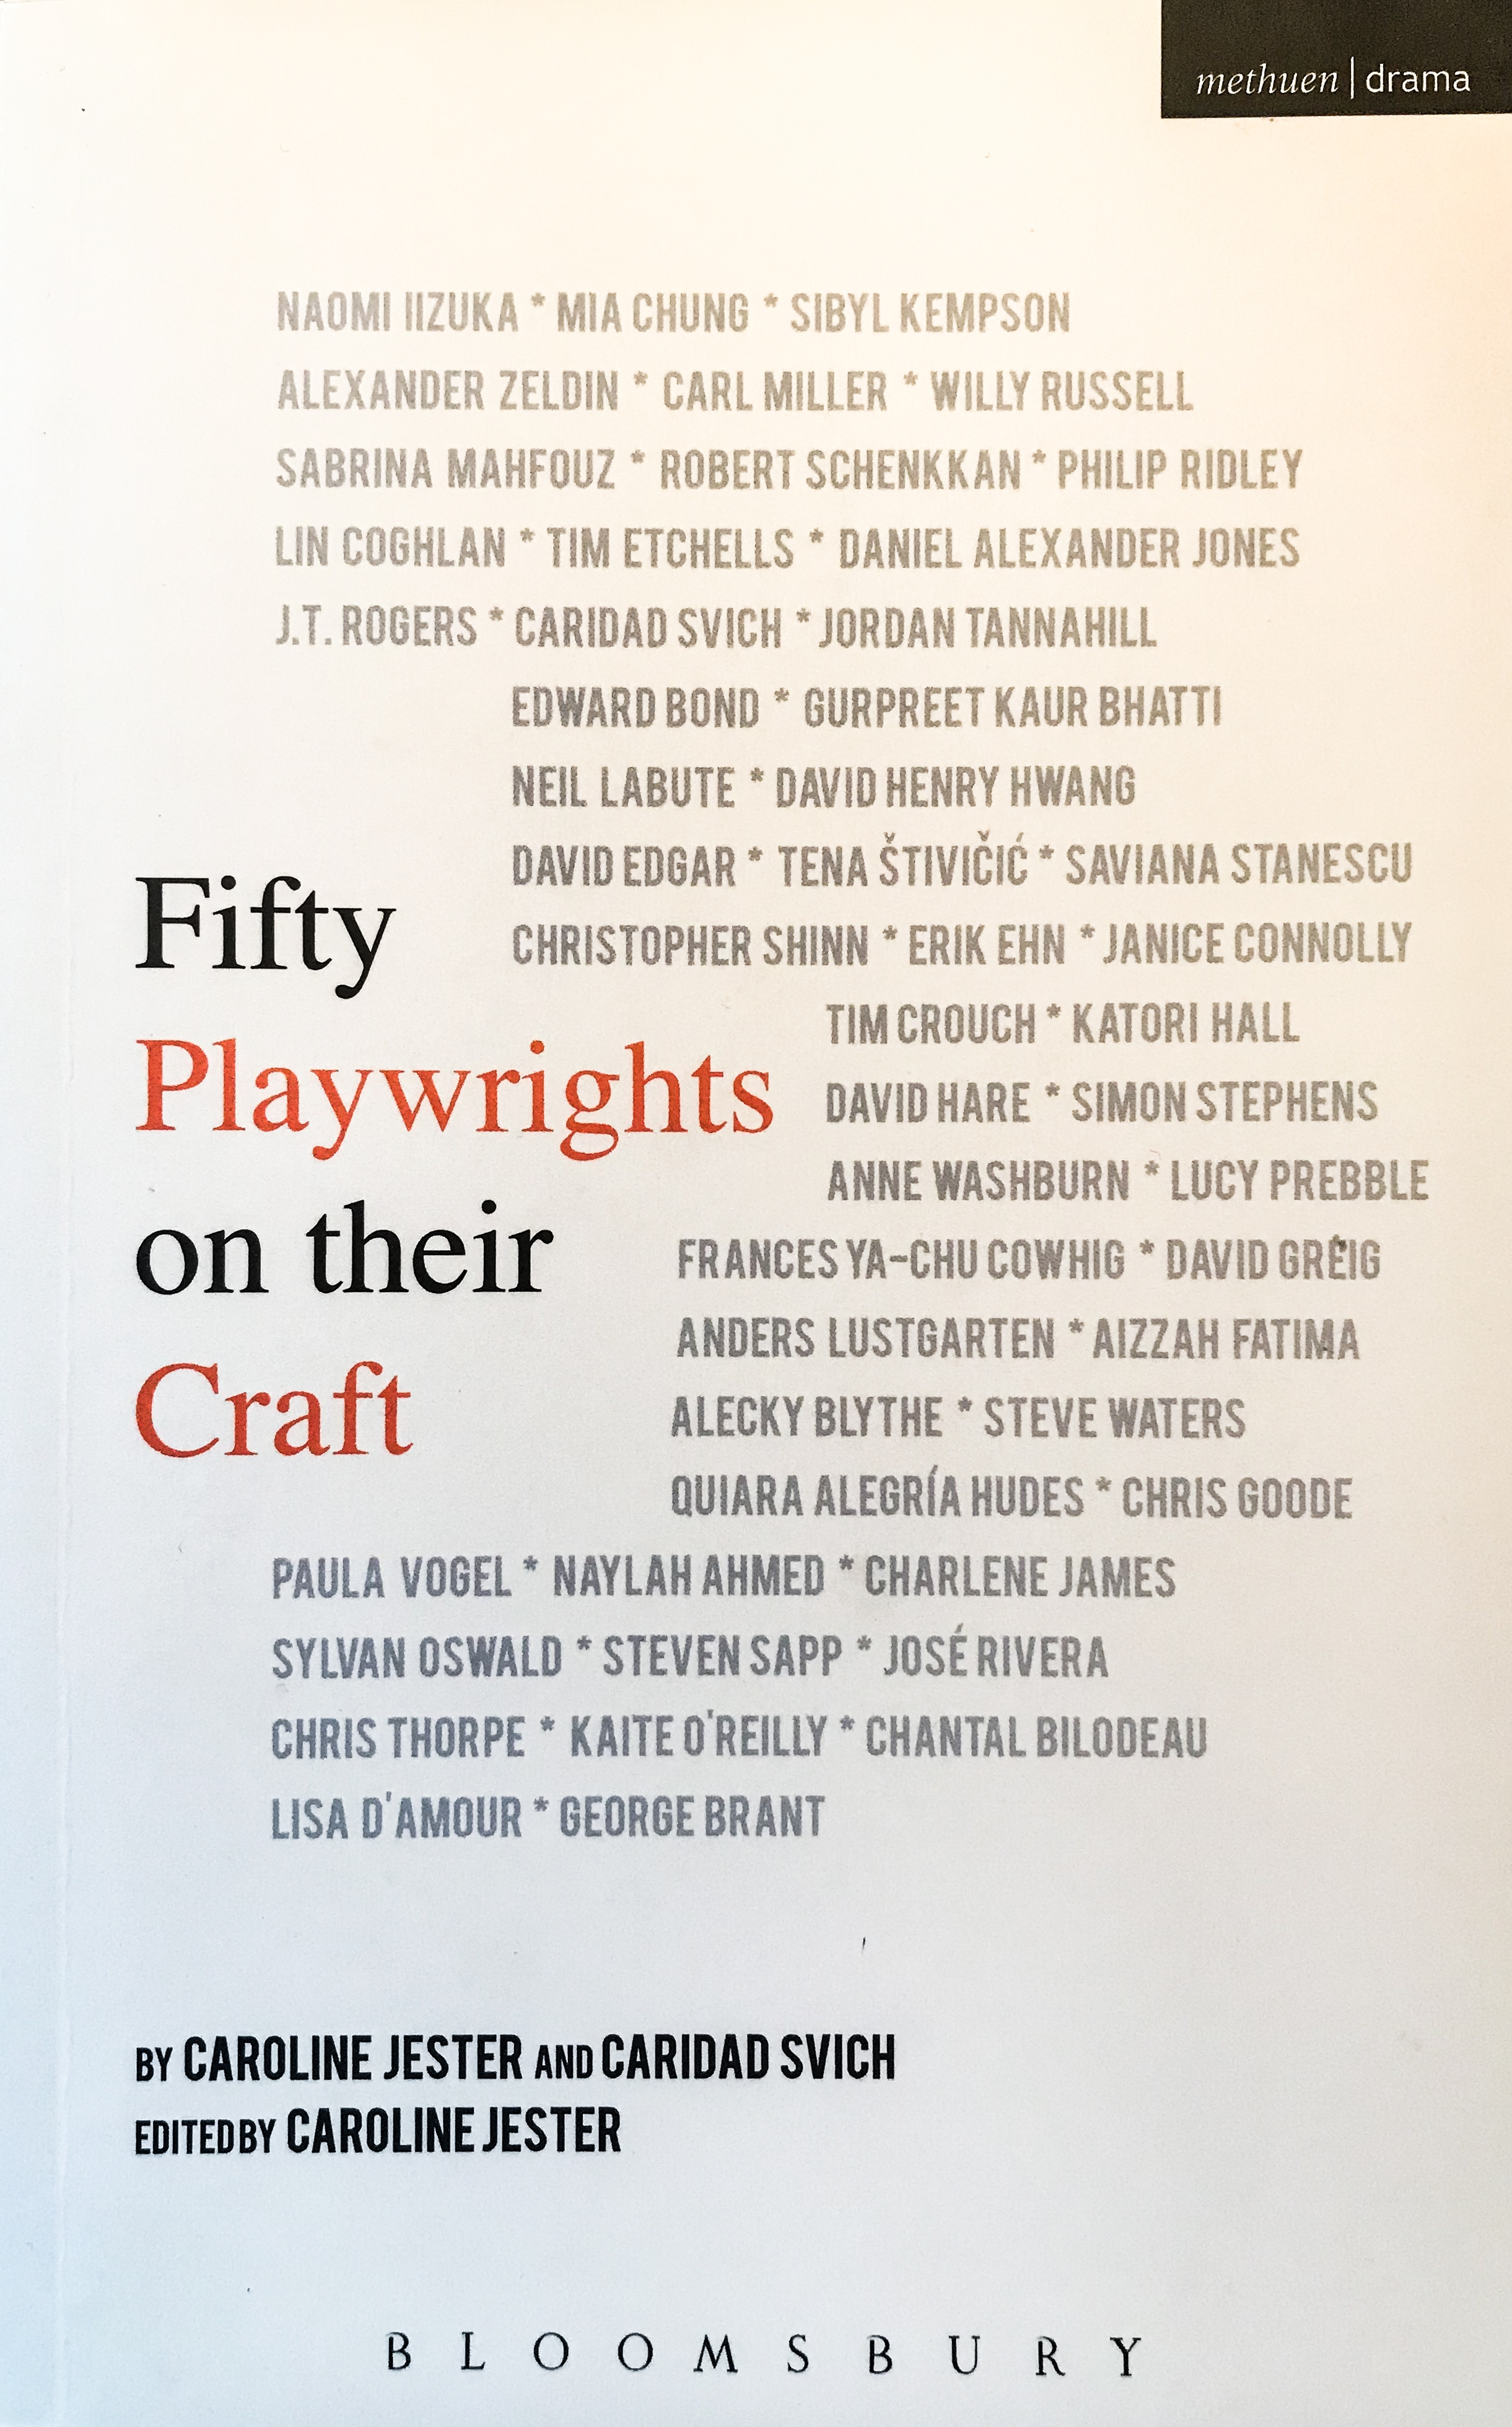 Fifty Playwrights on their Craft